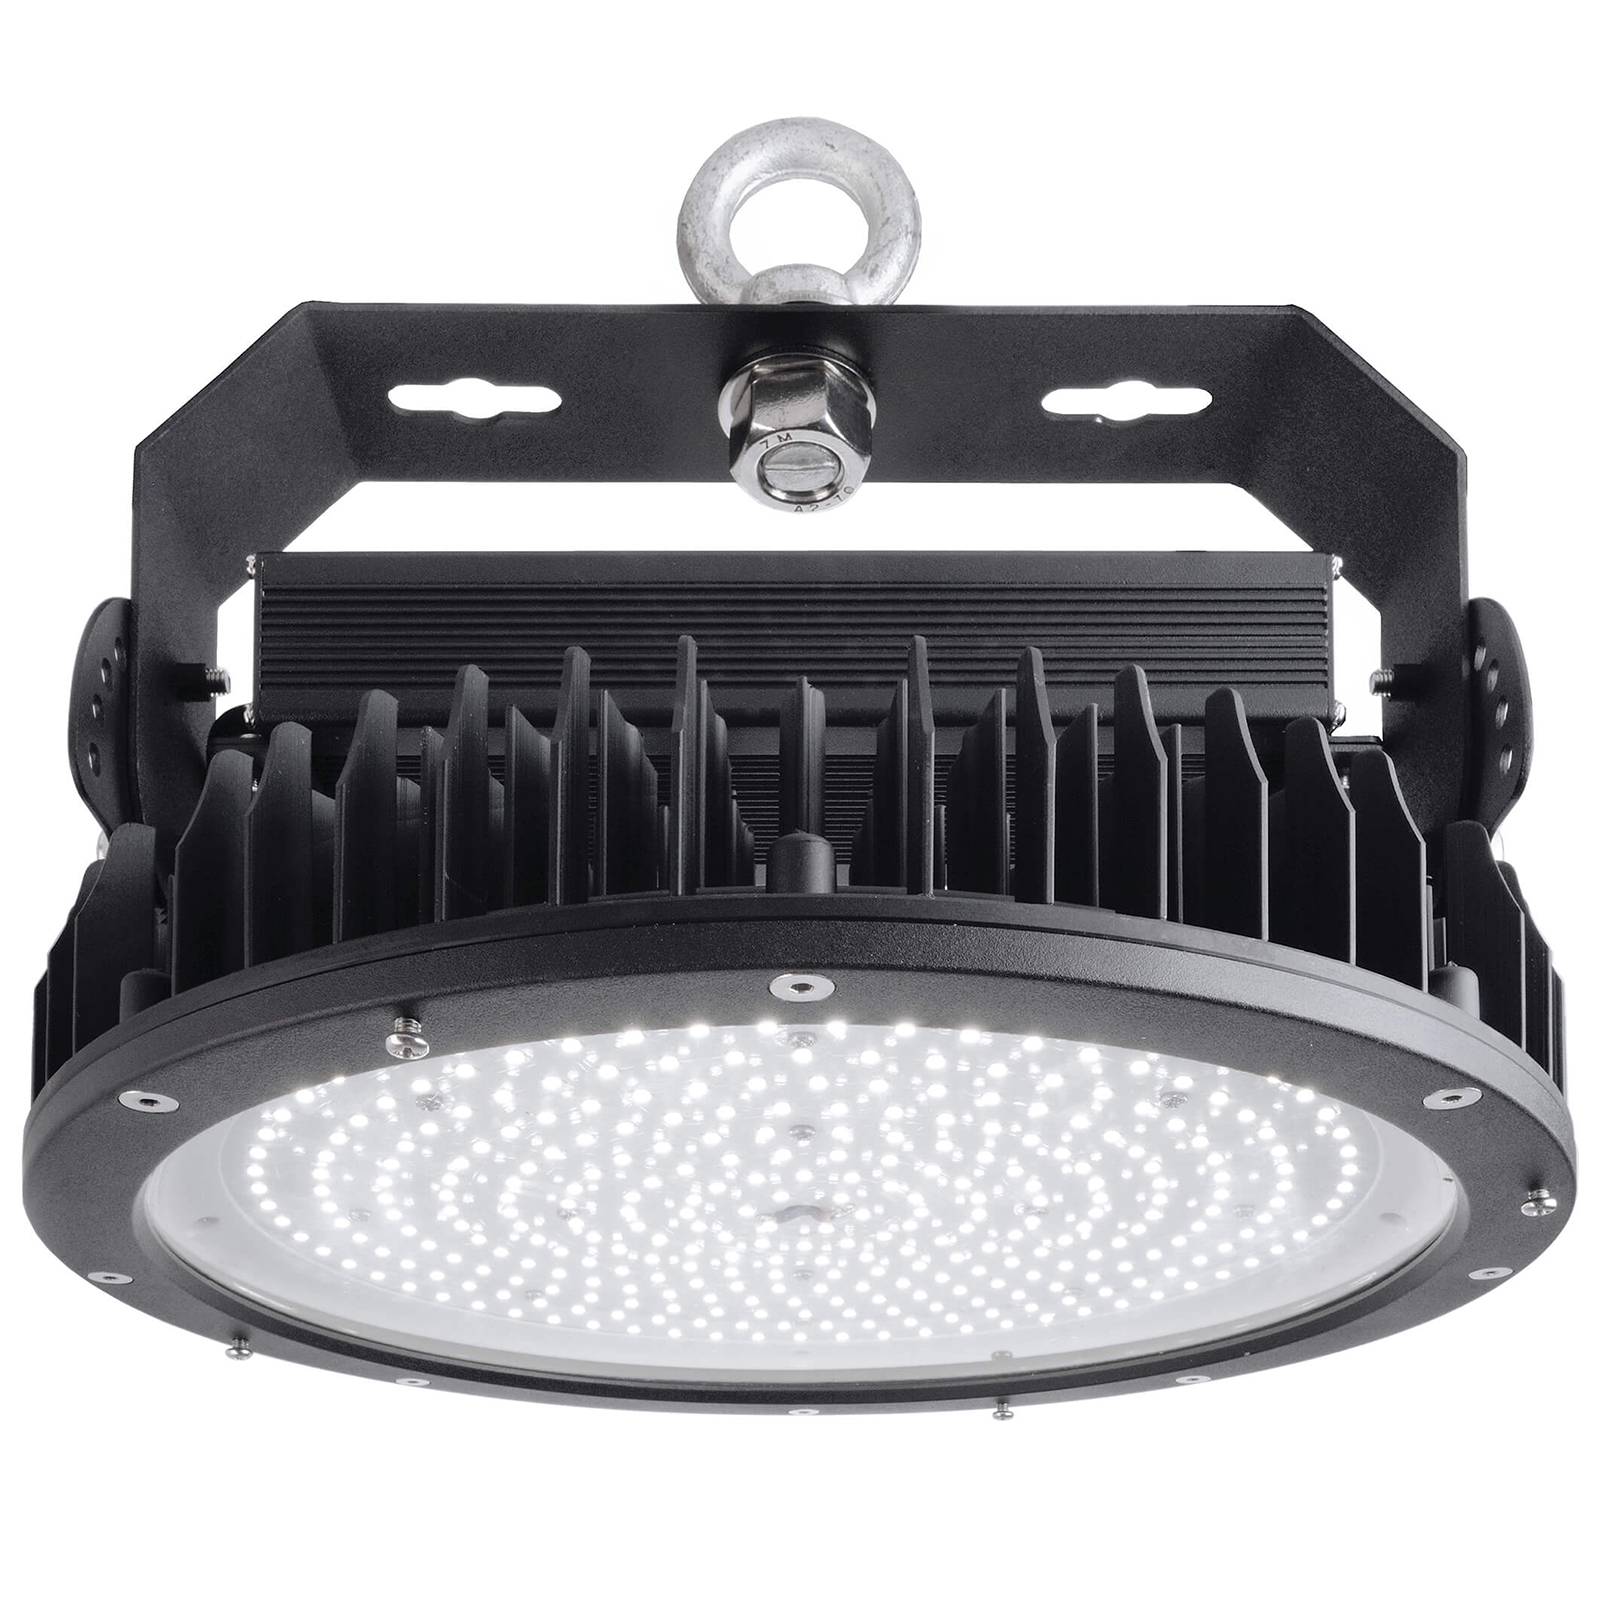 The suspension of the industrial lighthouse LED 288W light garage parking 390000lm 5000K 230V